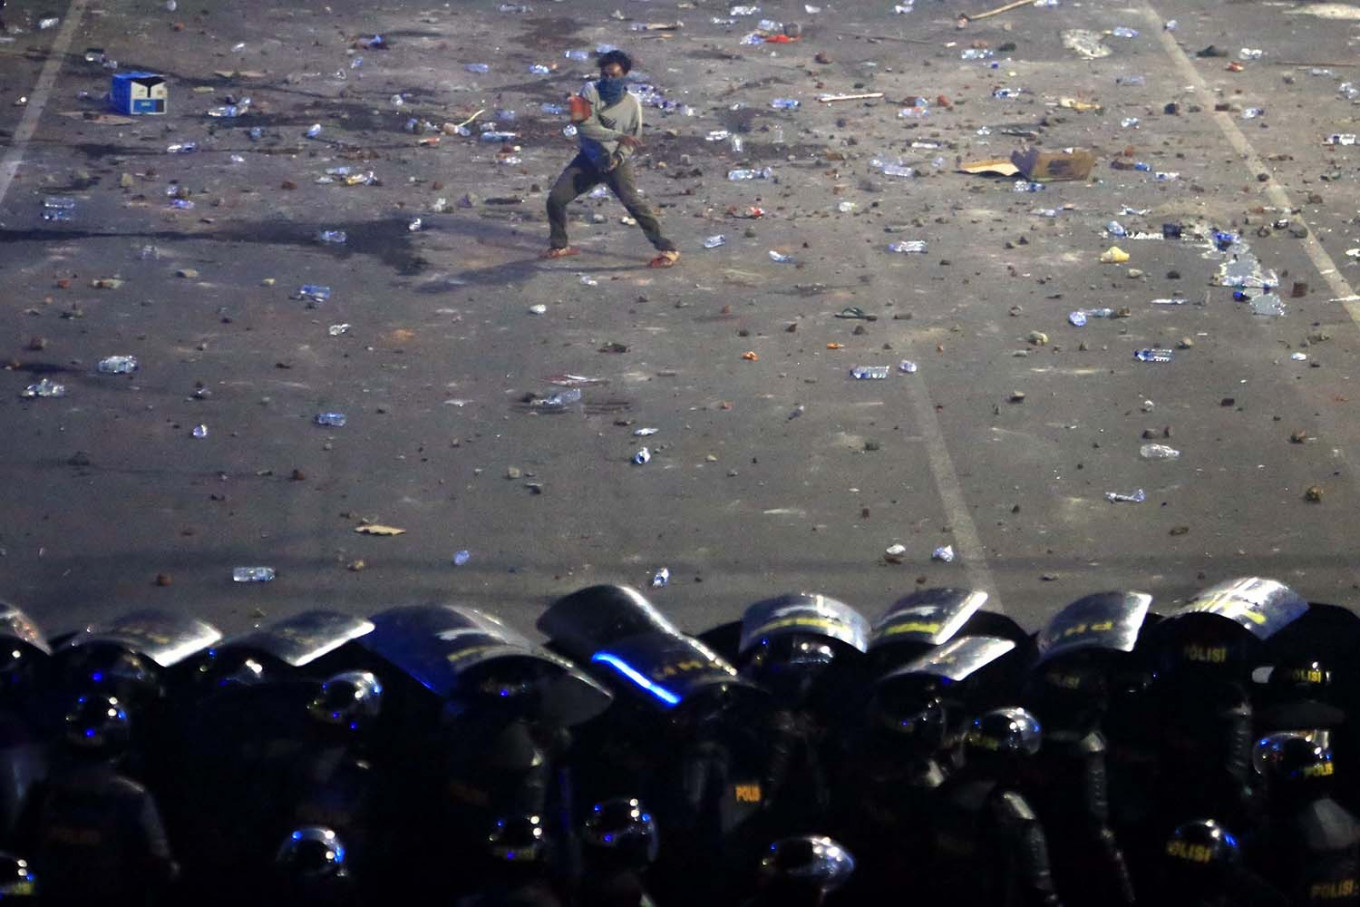 Trials kick off for hundreds of alleged May 22 rioters